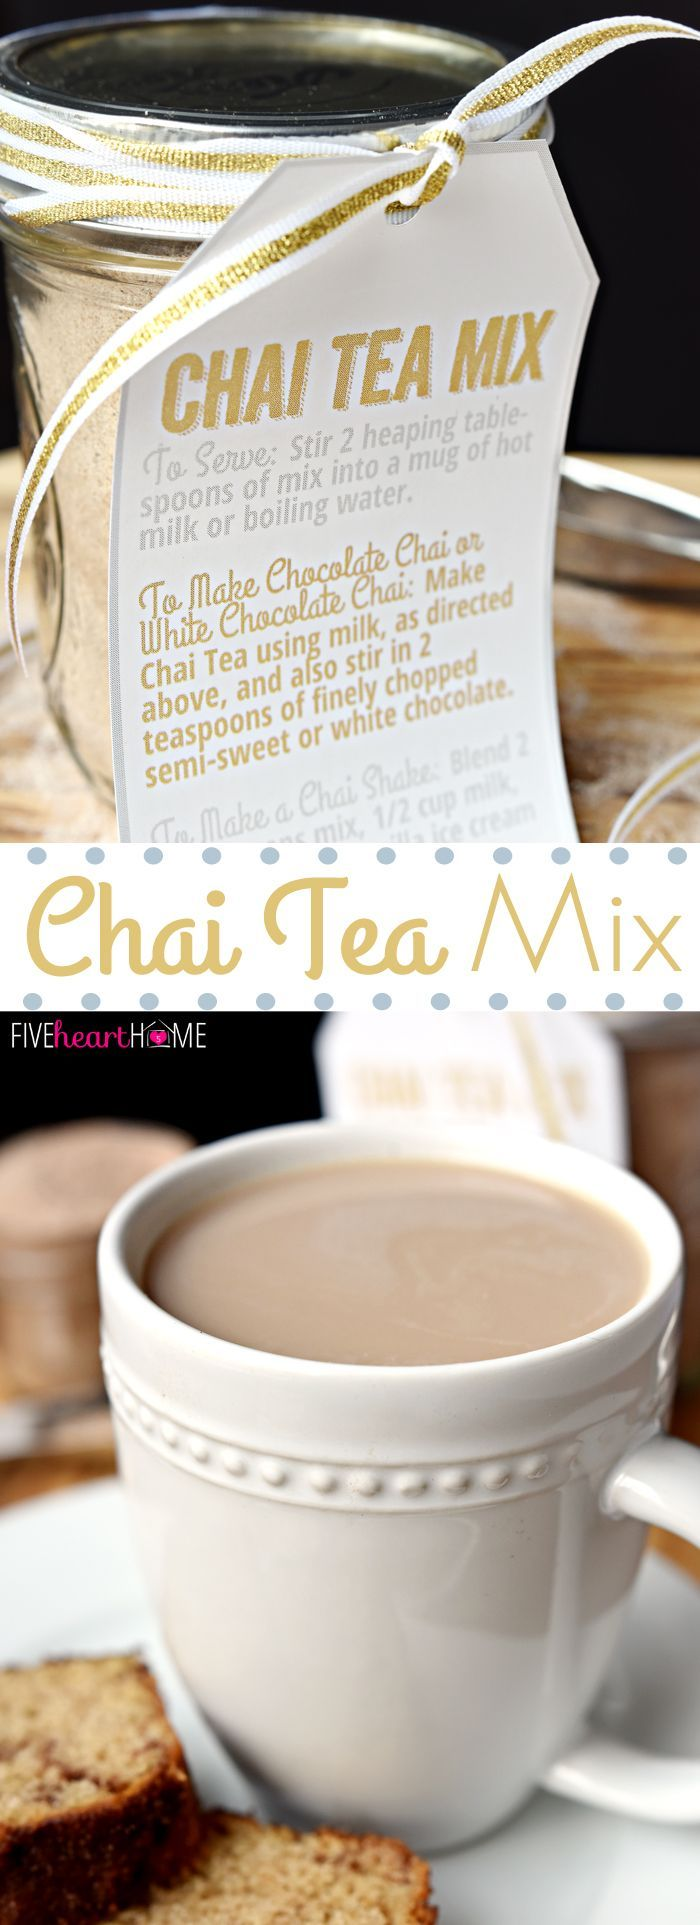 Chai Tea Mix ~ a unique homemade food gift | includes free printable gift tags with directions for gift giving!